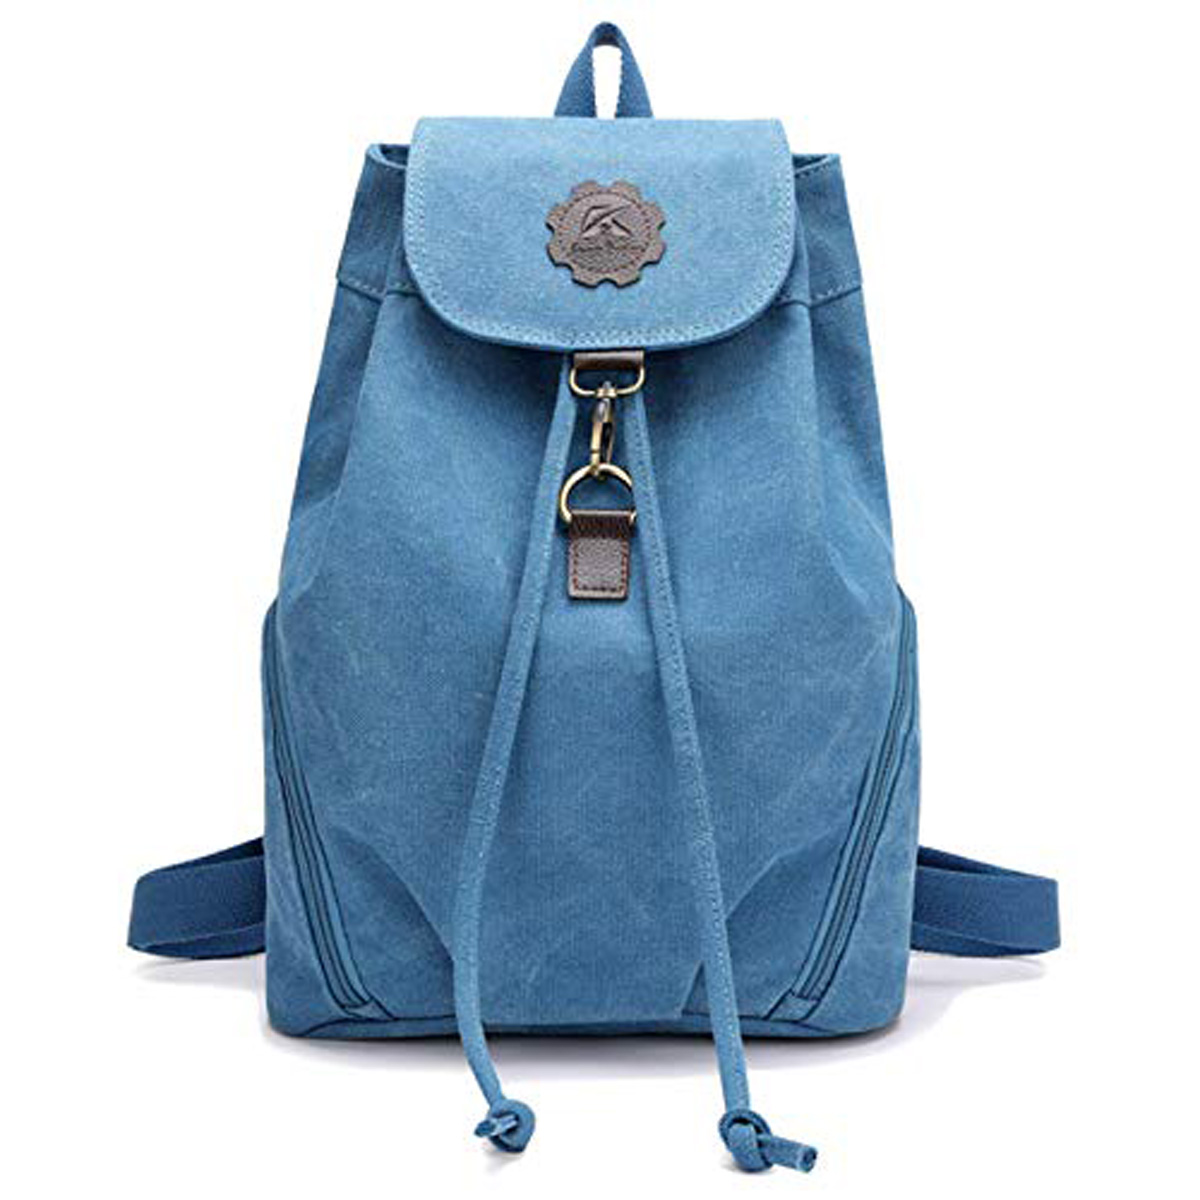 blue travel satchel